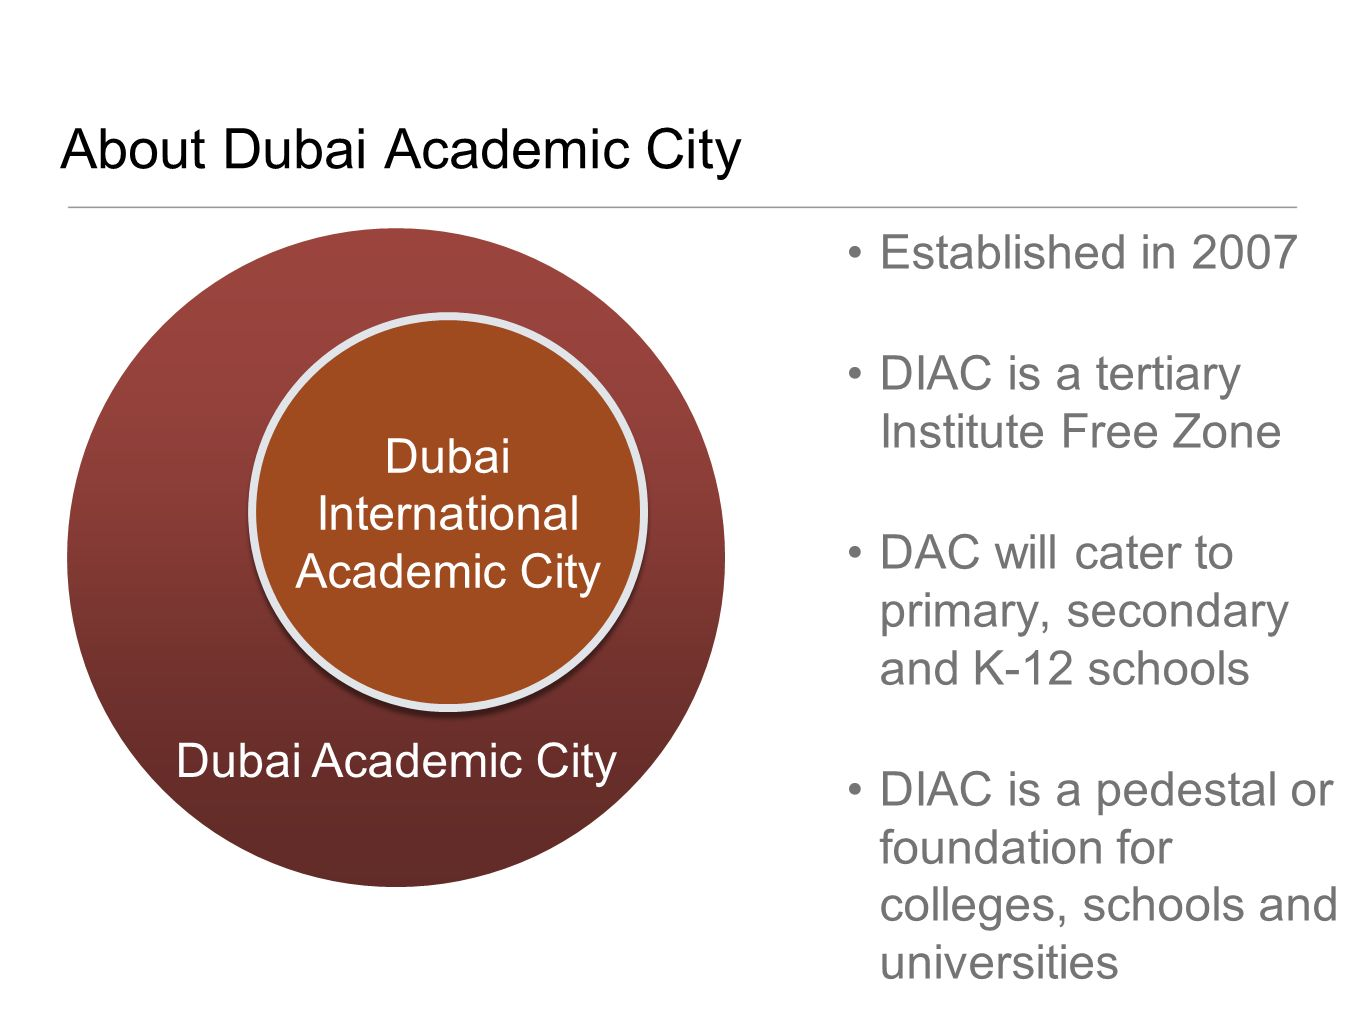 About Dubai Academic City Established in 2007 DIAC is a tertiary Institute Free Zone DAC will cater to primary, secondary and K-12 schools DIAC is a pedestal or foundation for colleges, schools and universities Dubai Academic City Dubai International Academic City